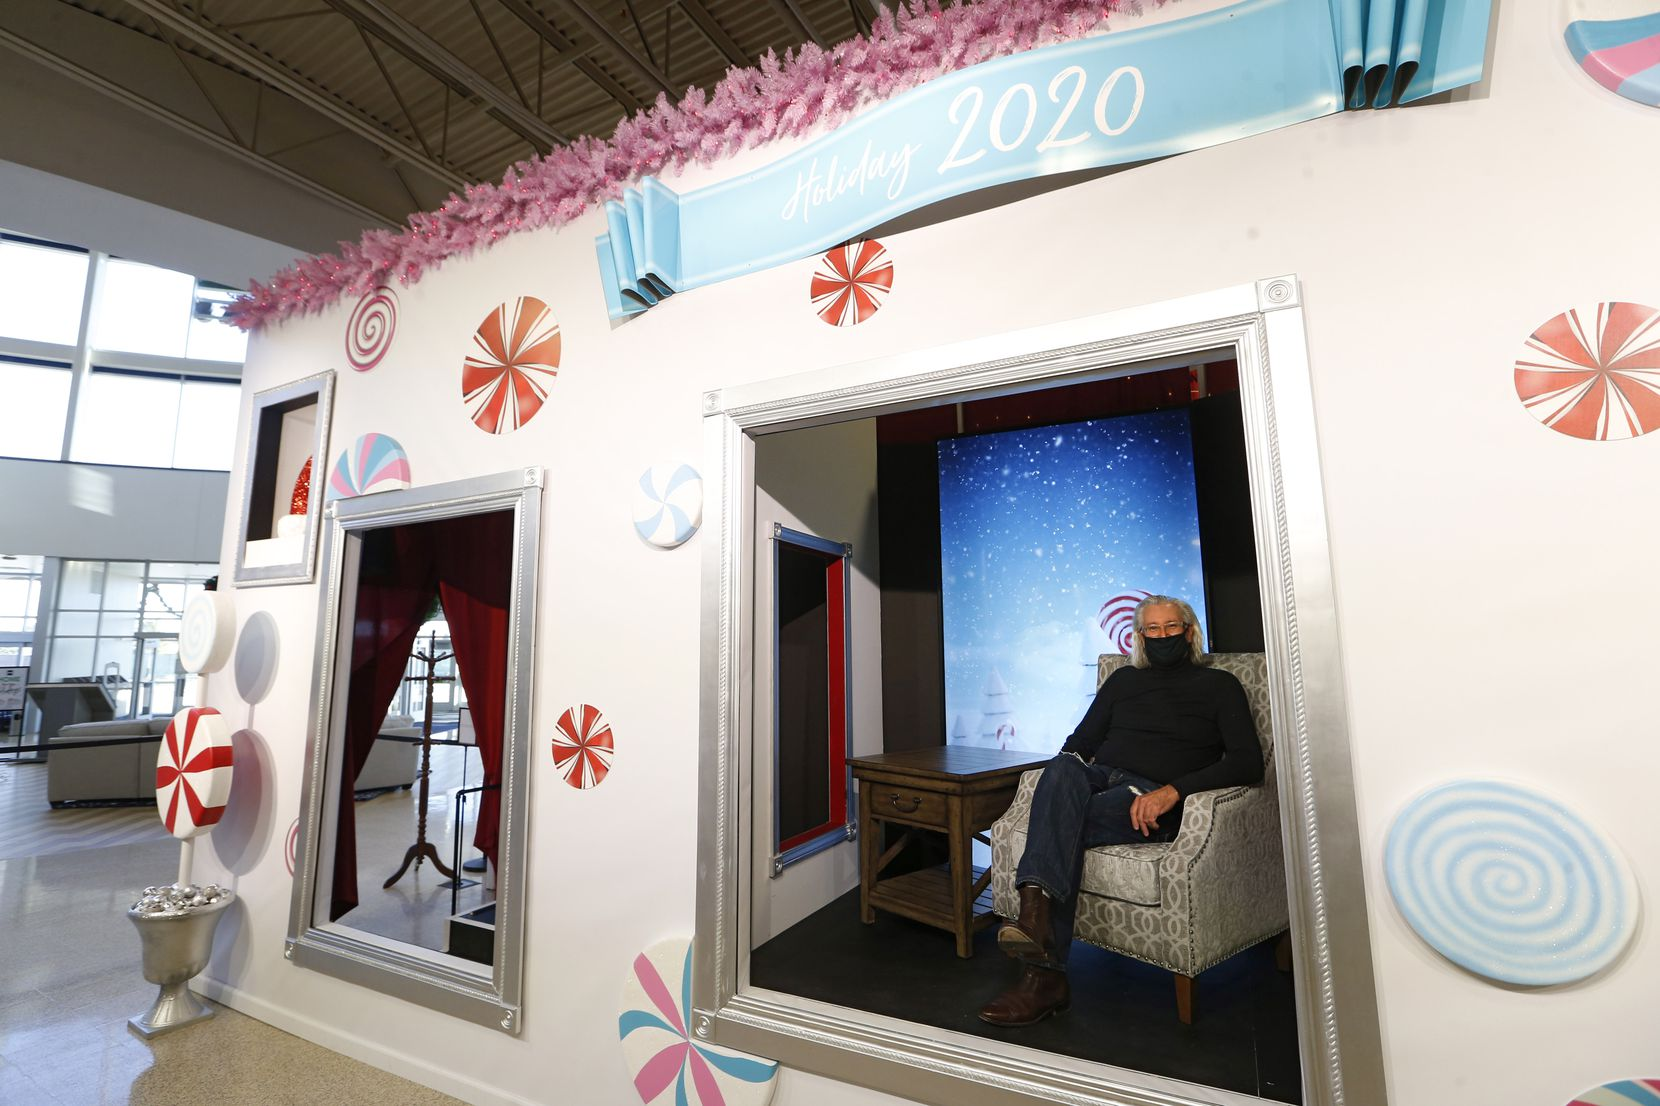 Ignaz Gorischek posed for a portrait in the Santa seat at Nebraska Furniture Mart in The Colony. Santa can sit in the center booth and visit with children in the side rooms next to him. Gorischek created the socially distanced exhibit.